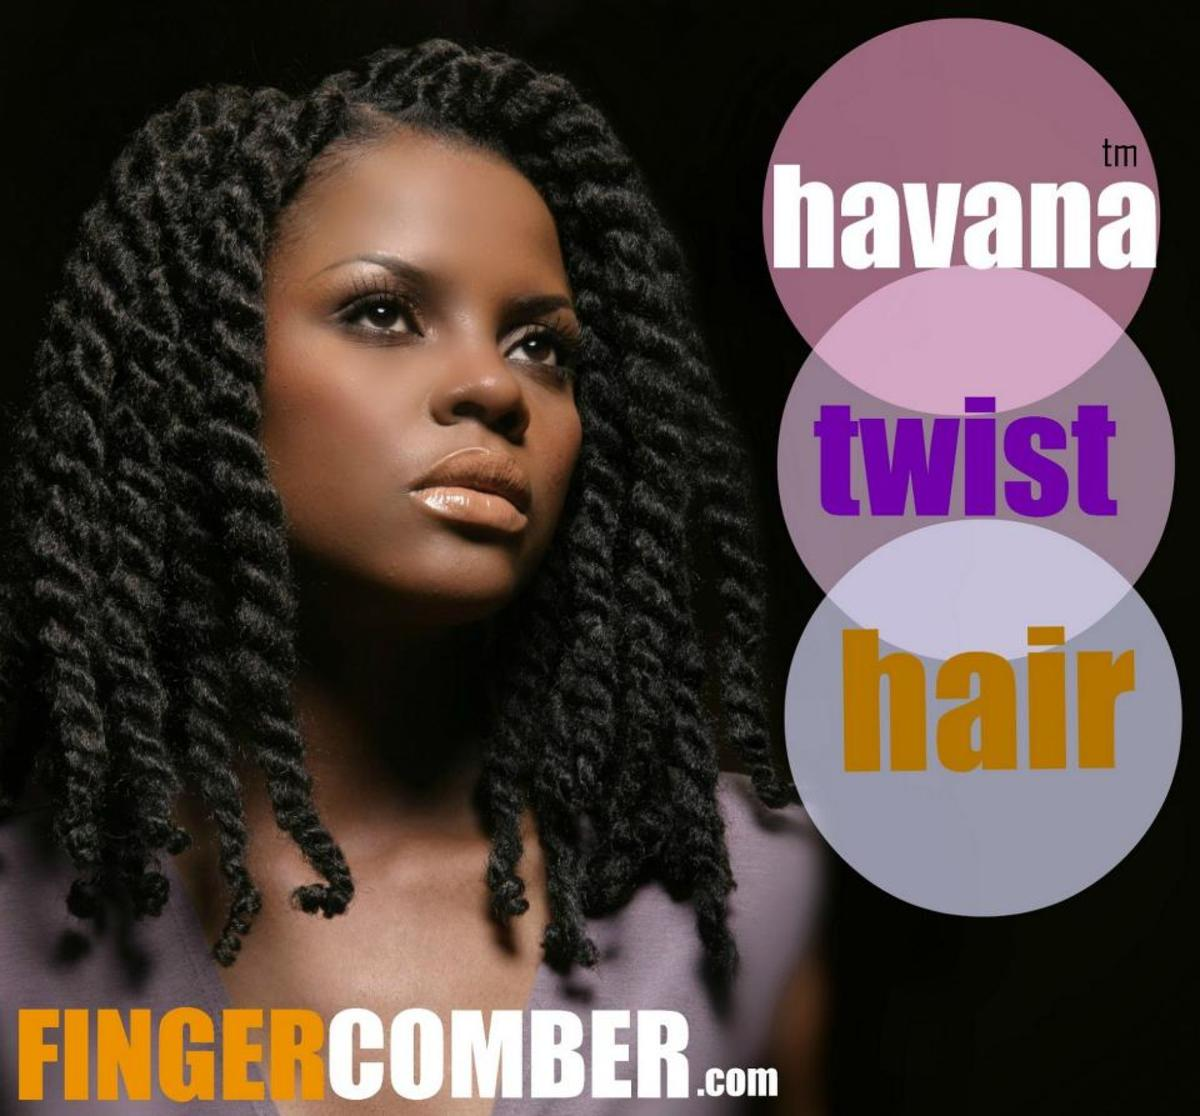 Havana & Marley Twists Nine Easy to Follow Step-by-Step For Beginners